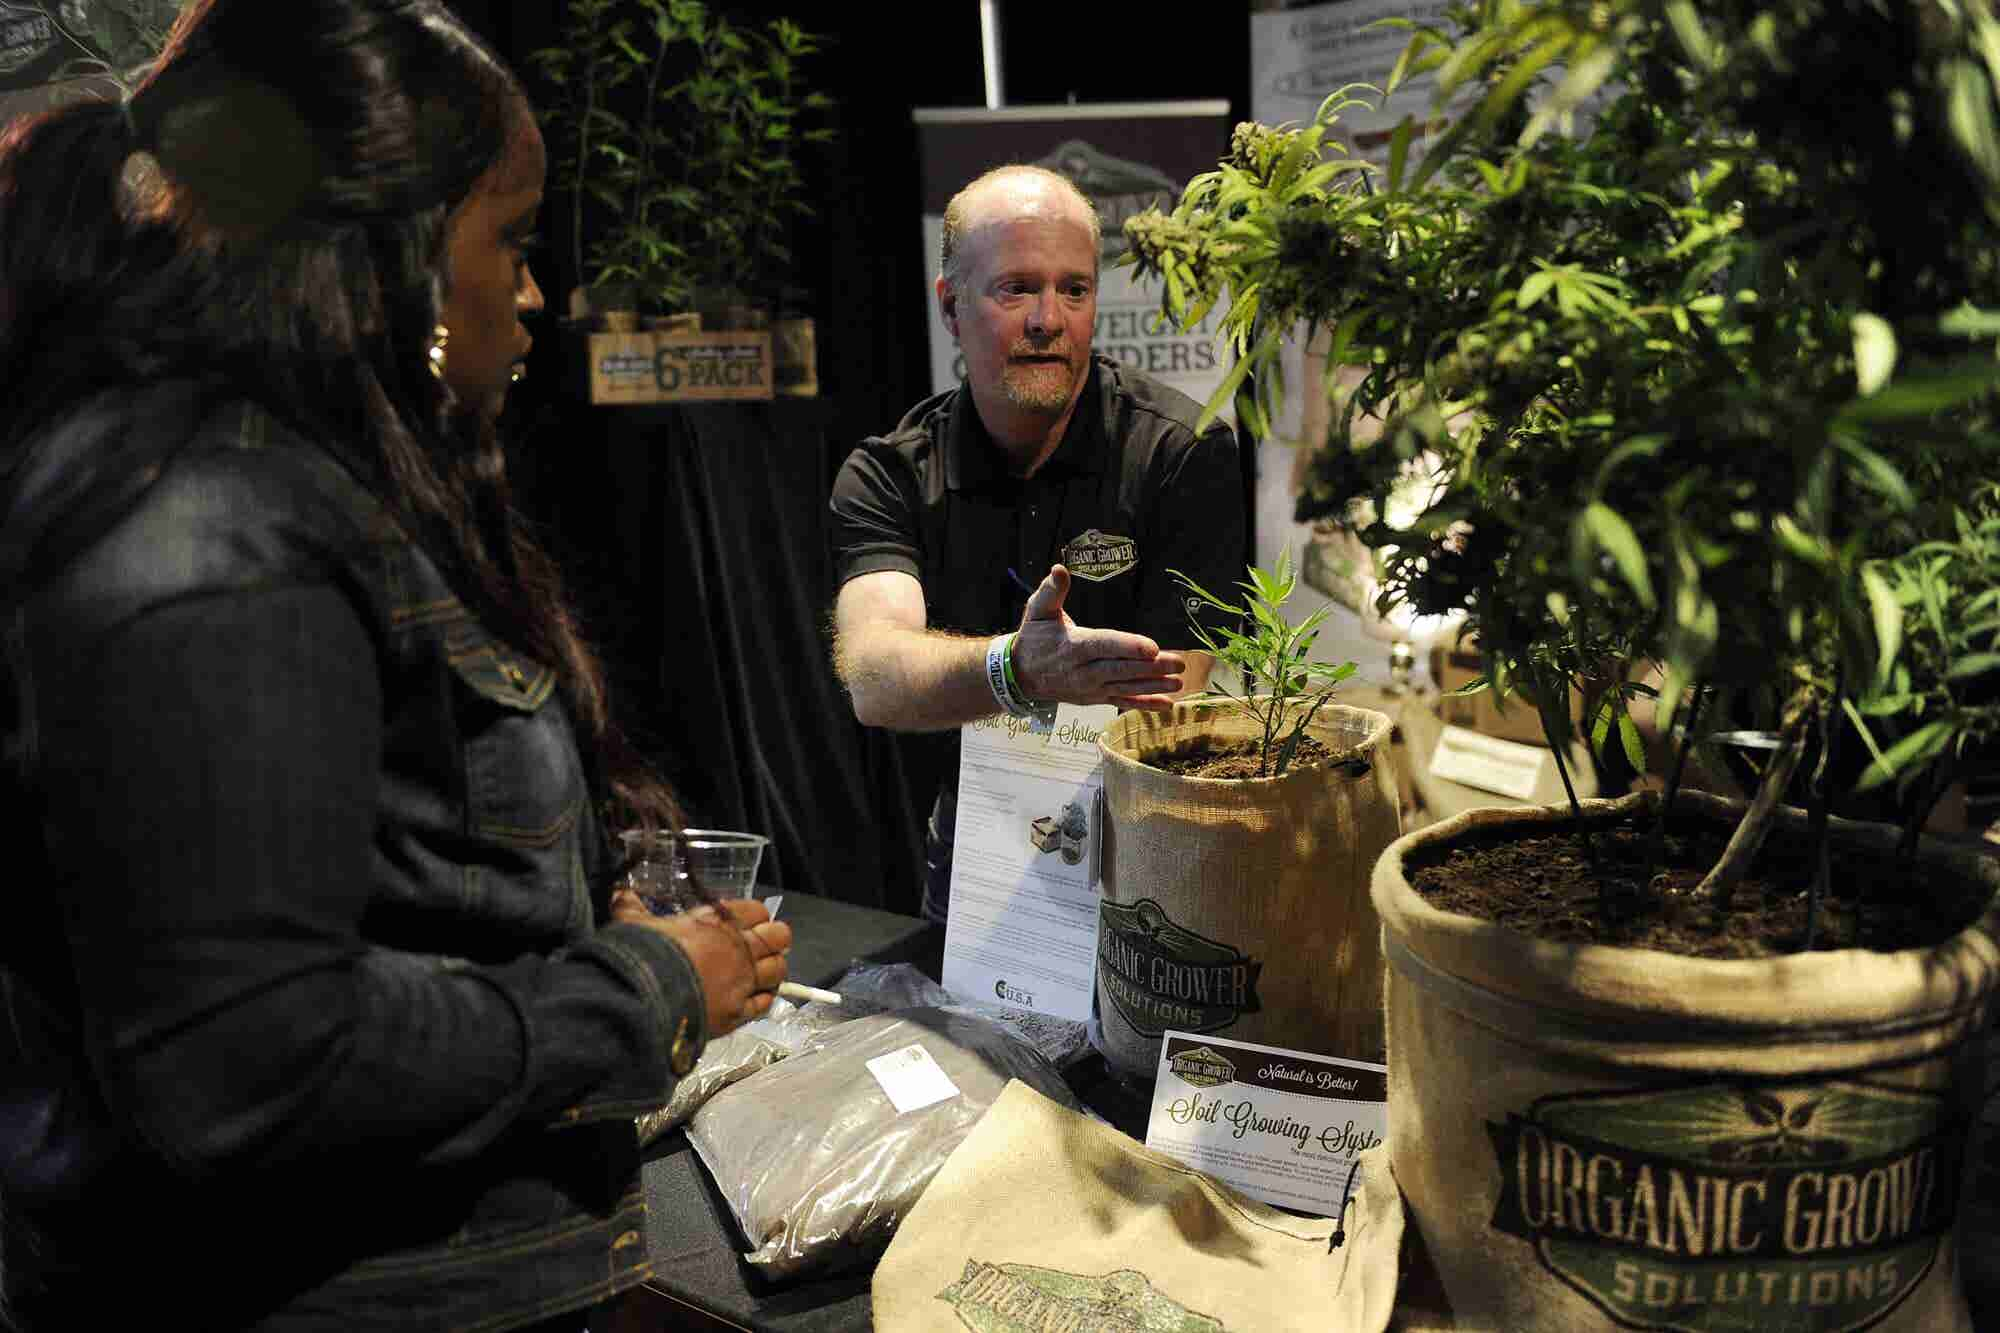 Some Tips for East Coast Cannabis Entrepreneurs From Colorado's Indust...